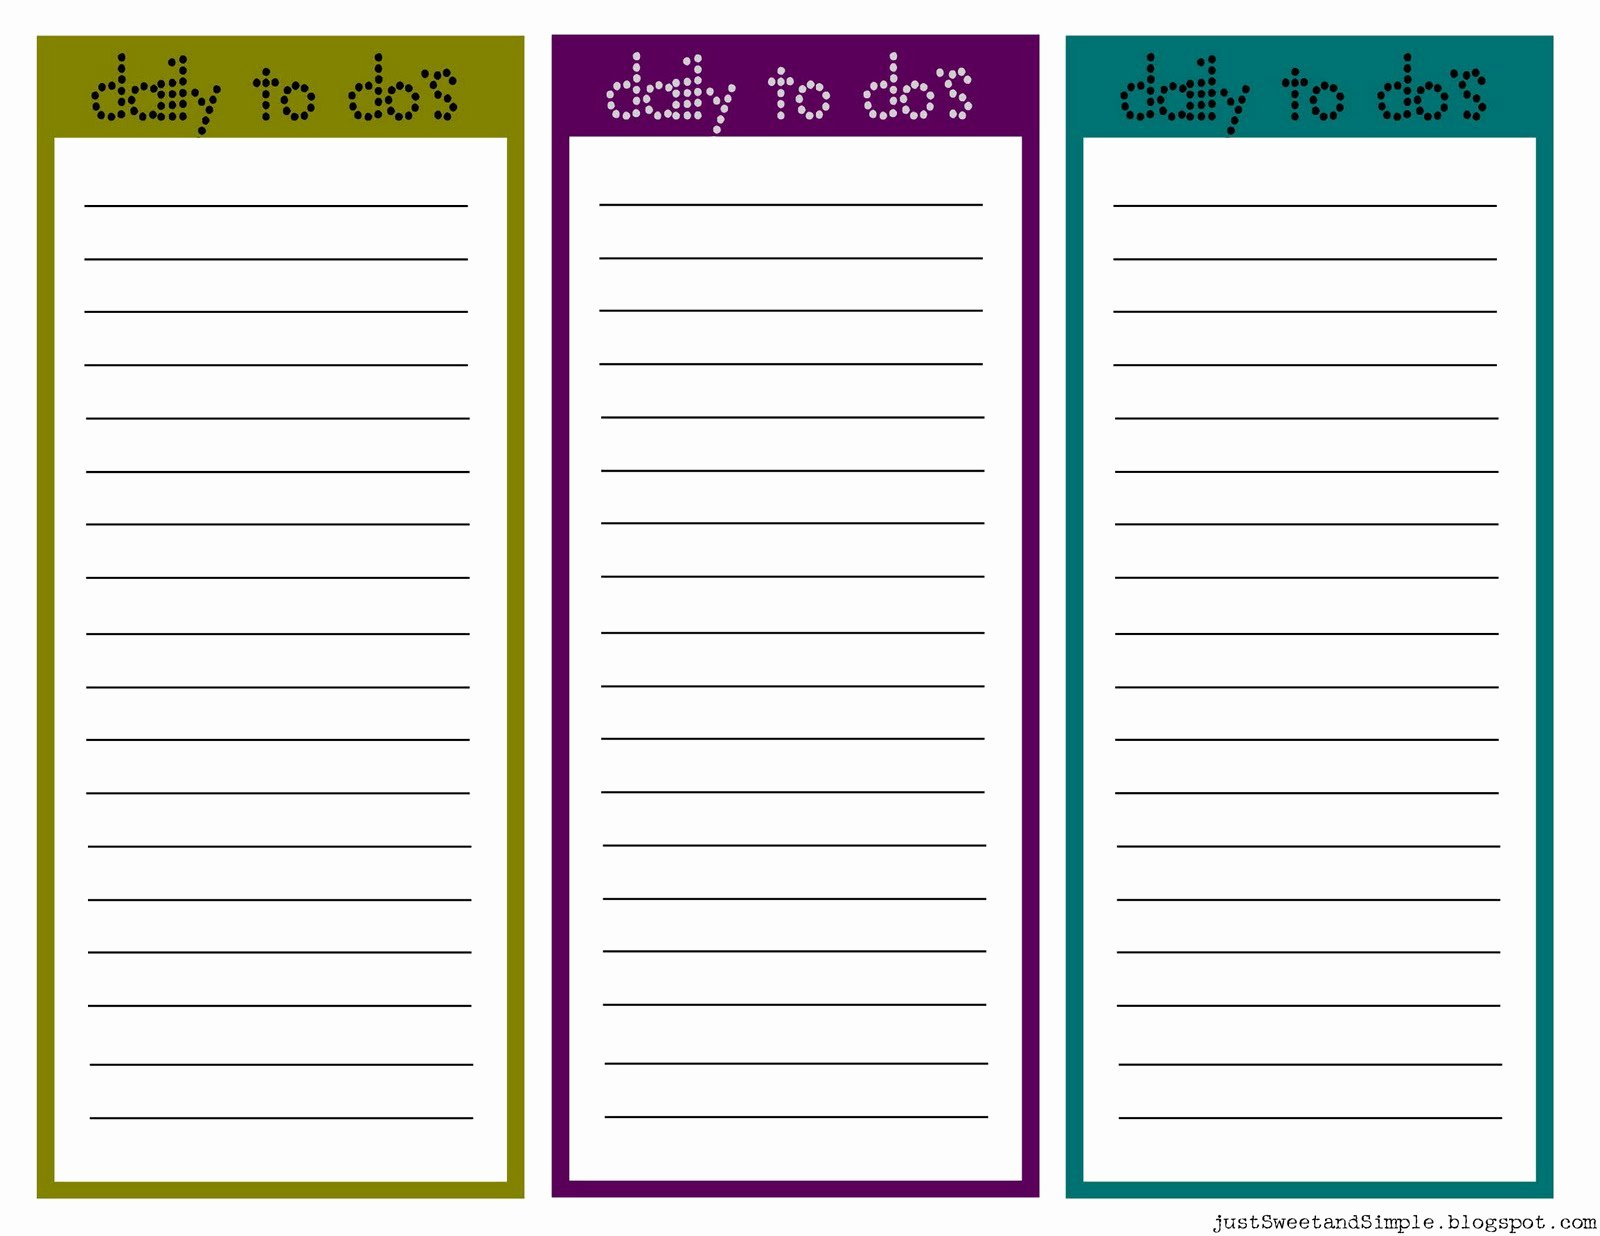 Daily Task List Template Unique Just Sweet and Simple Printable Little Daily to Do List S